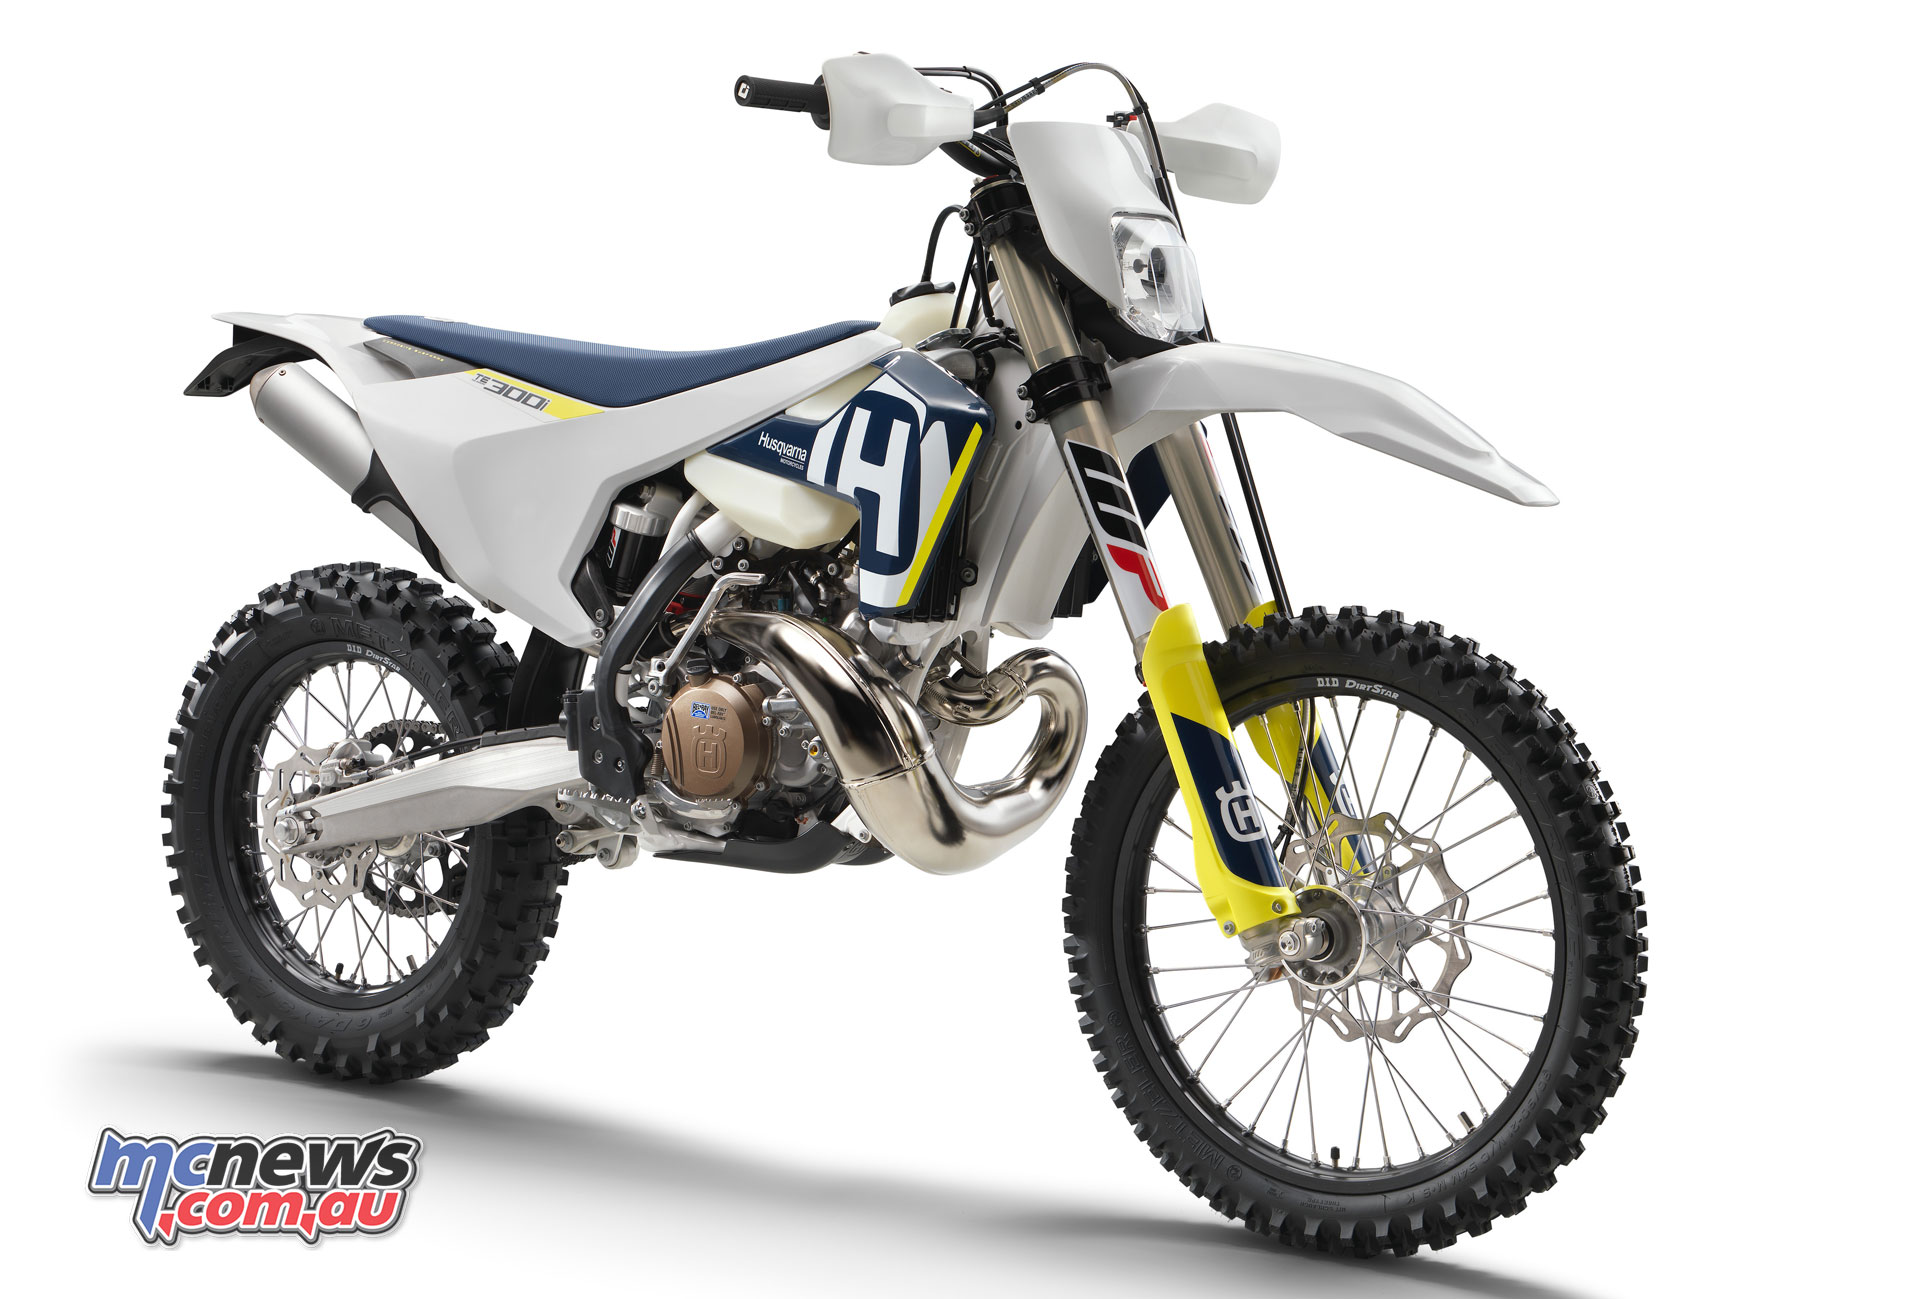 The new for 2018 Husqvarna TE 300i